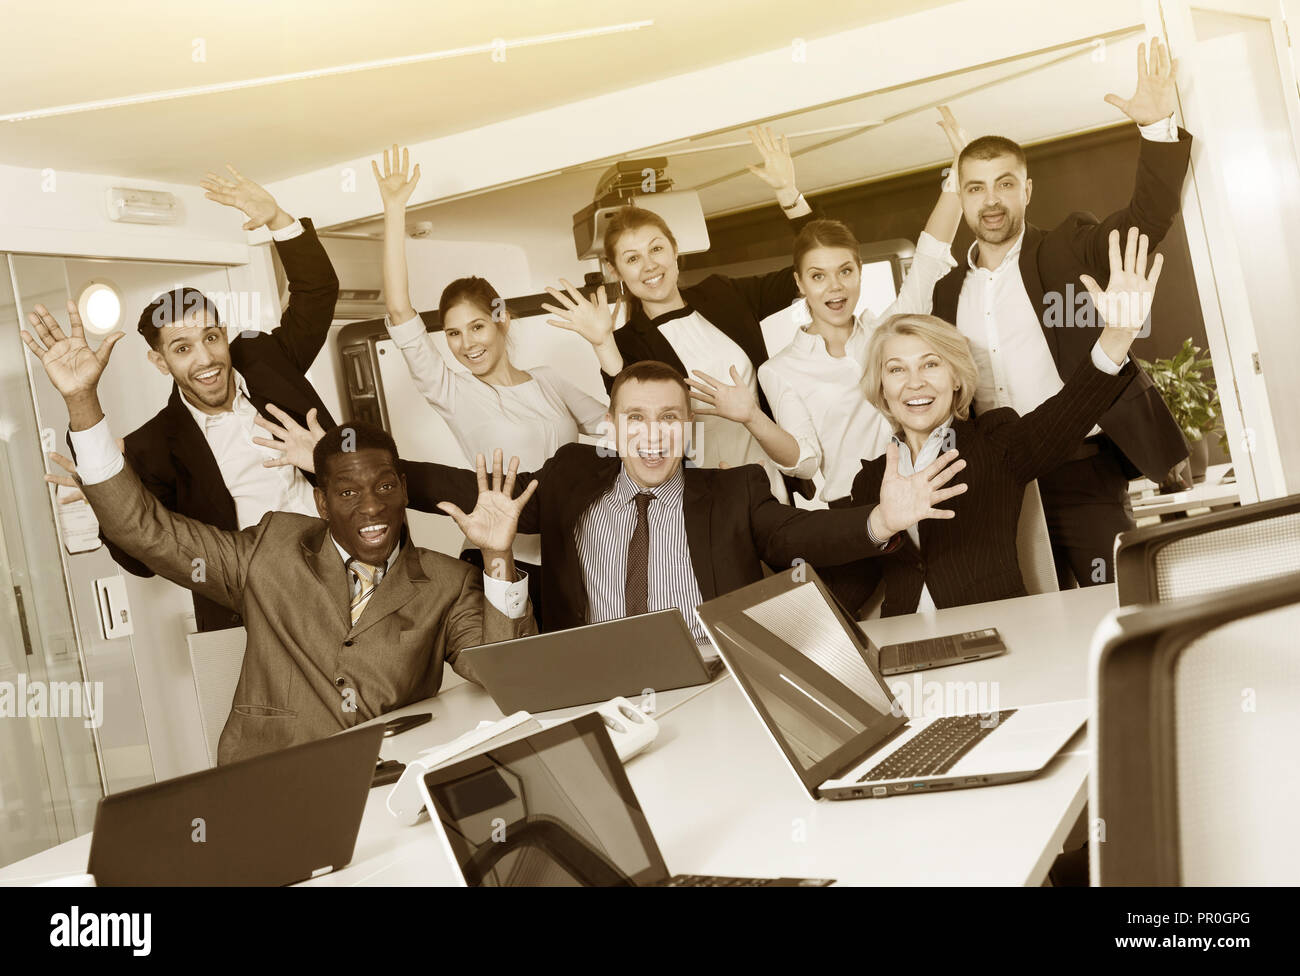 Professiona adult l international business team delighted with achievements of joint work in boardroom - Stock Image